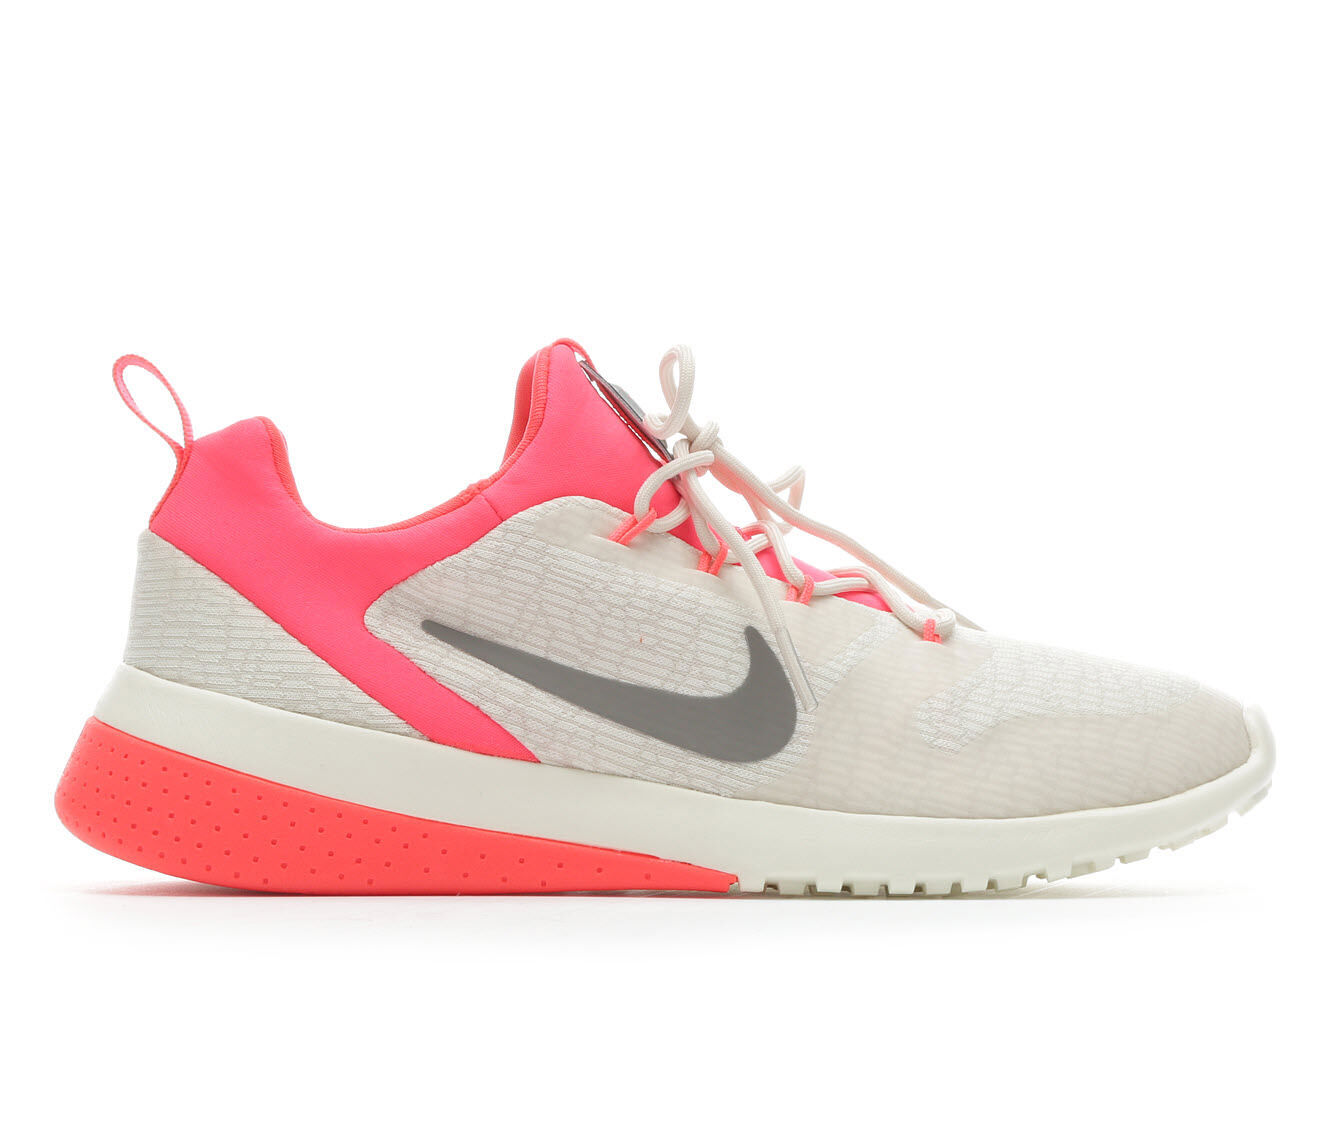 clearance high quality 100% original for sale Women's Nike CK Racer Sneakers 9VcvZftQil